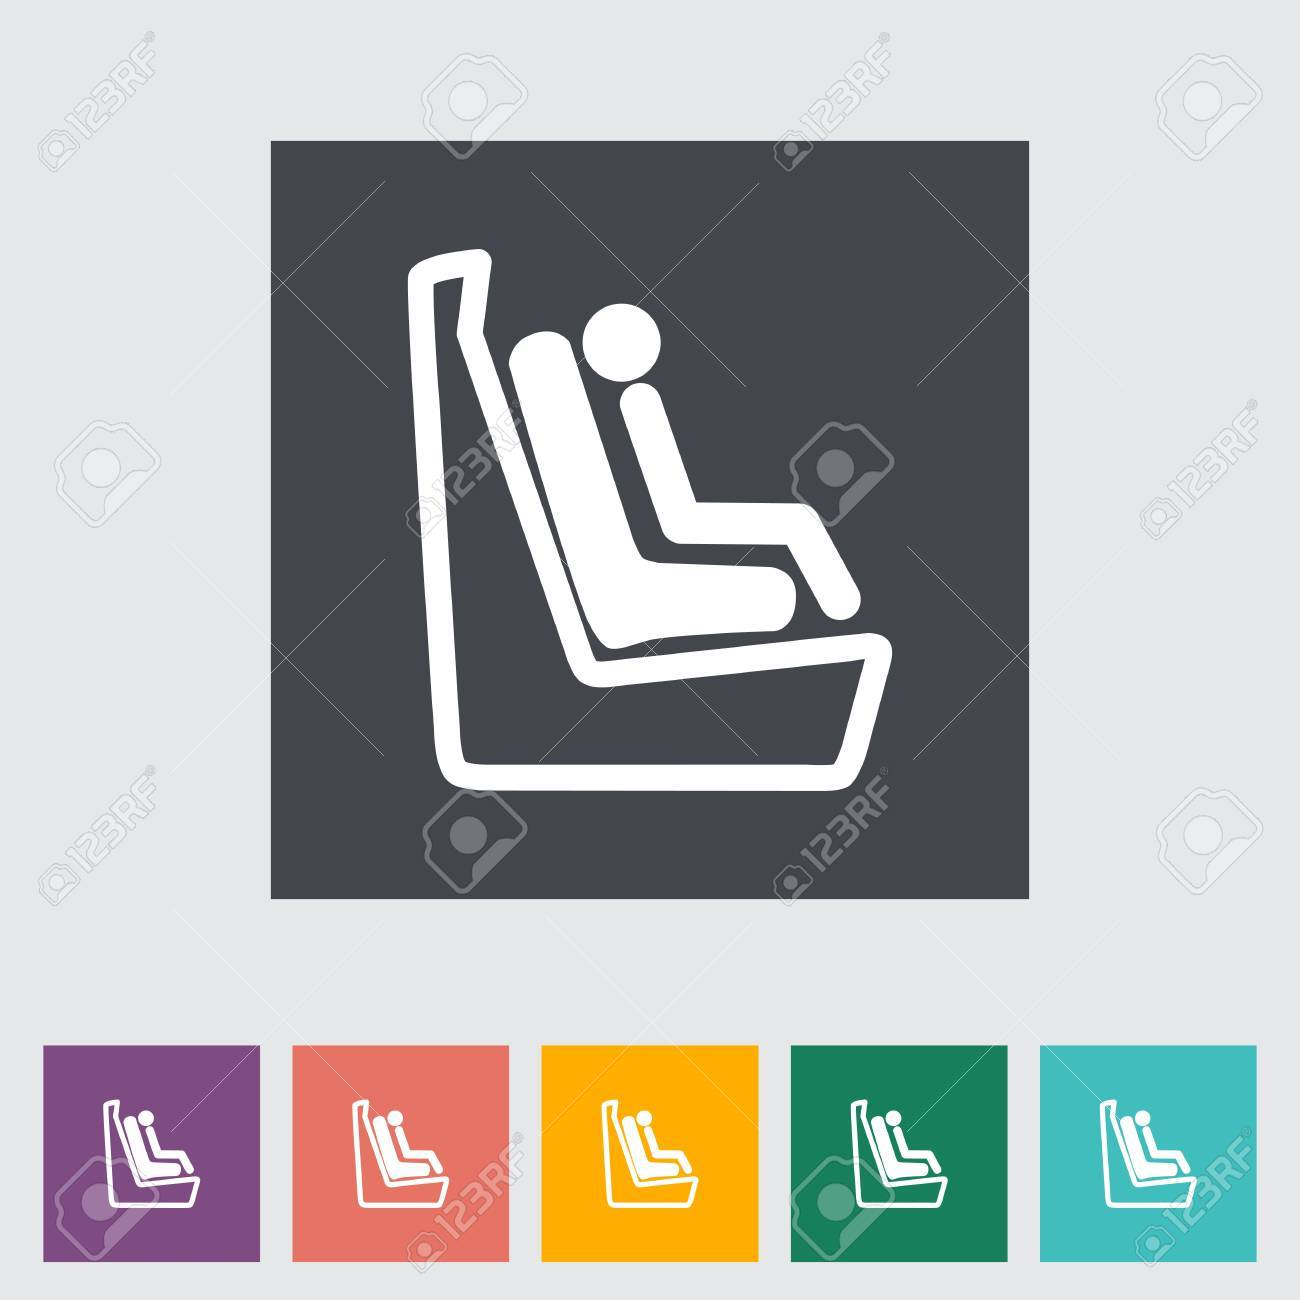 Lower anchors and tethers for children. Single flat icon. Vector illustration. Stock Vector - 21190402